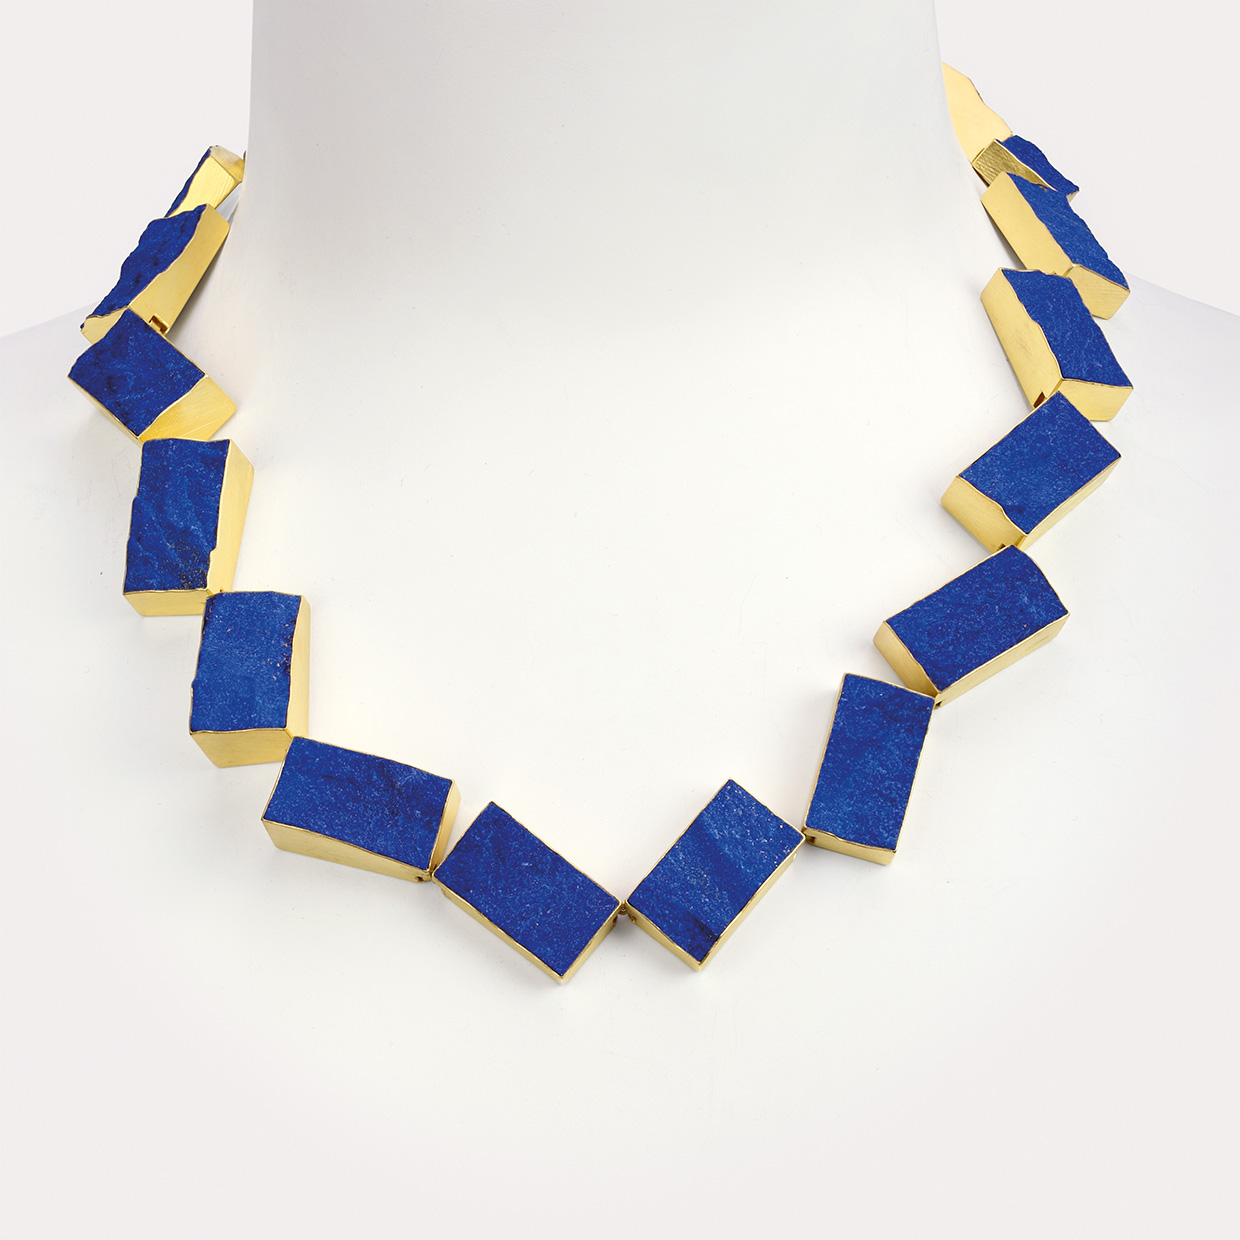 necklace  2016  gold  750  lapislazuli  540x25  mm